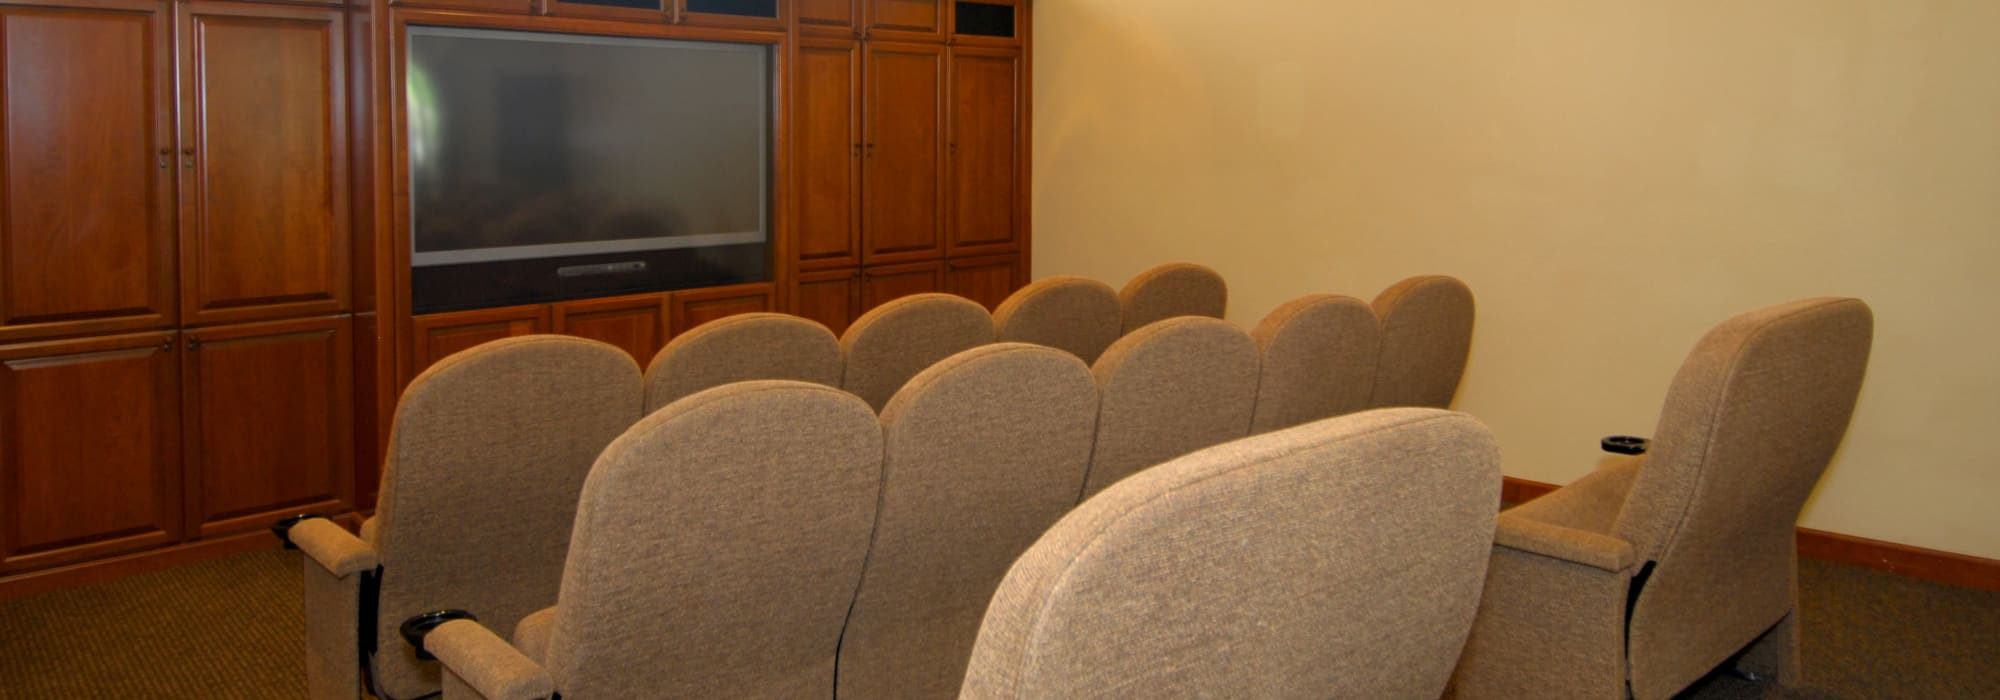 Theater room at Remington Ranch in Litchfield Park, Arizona